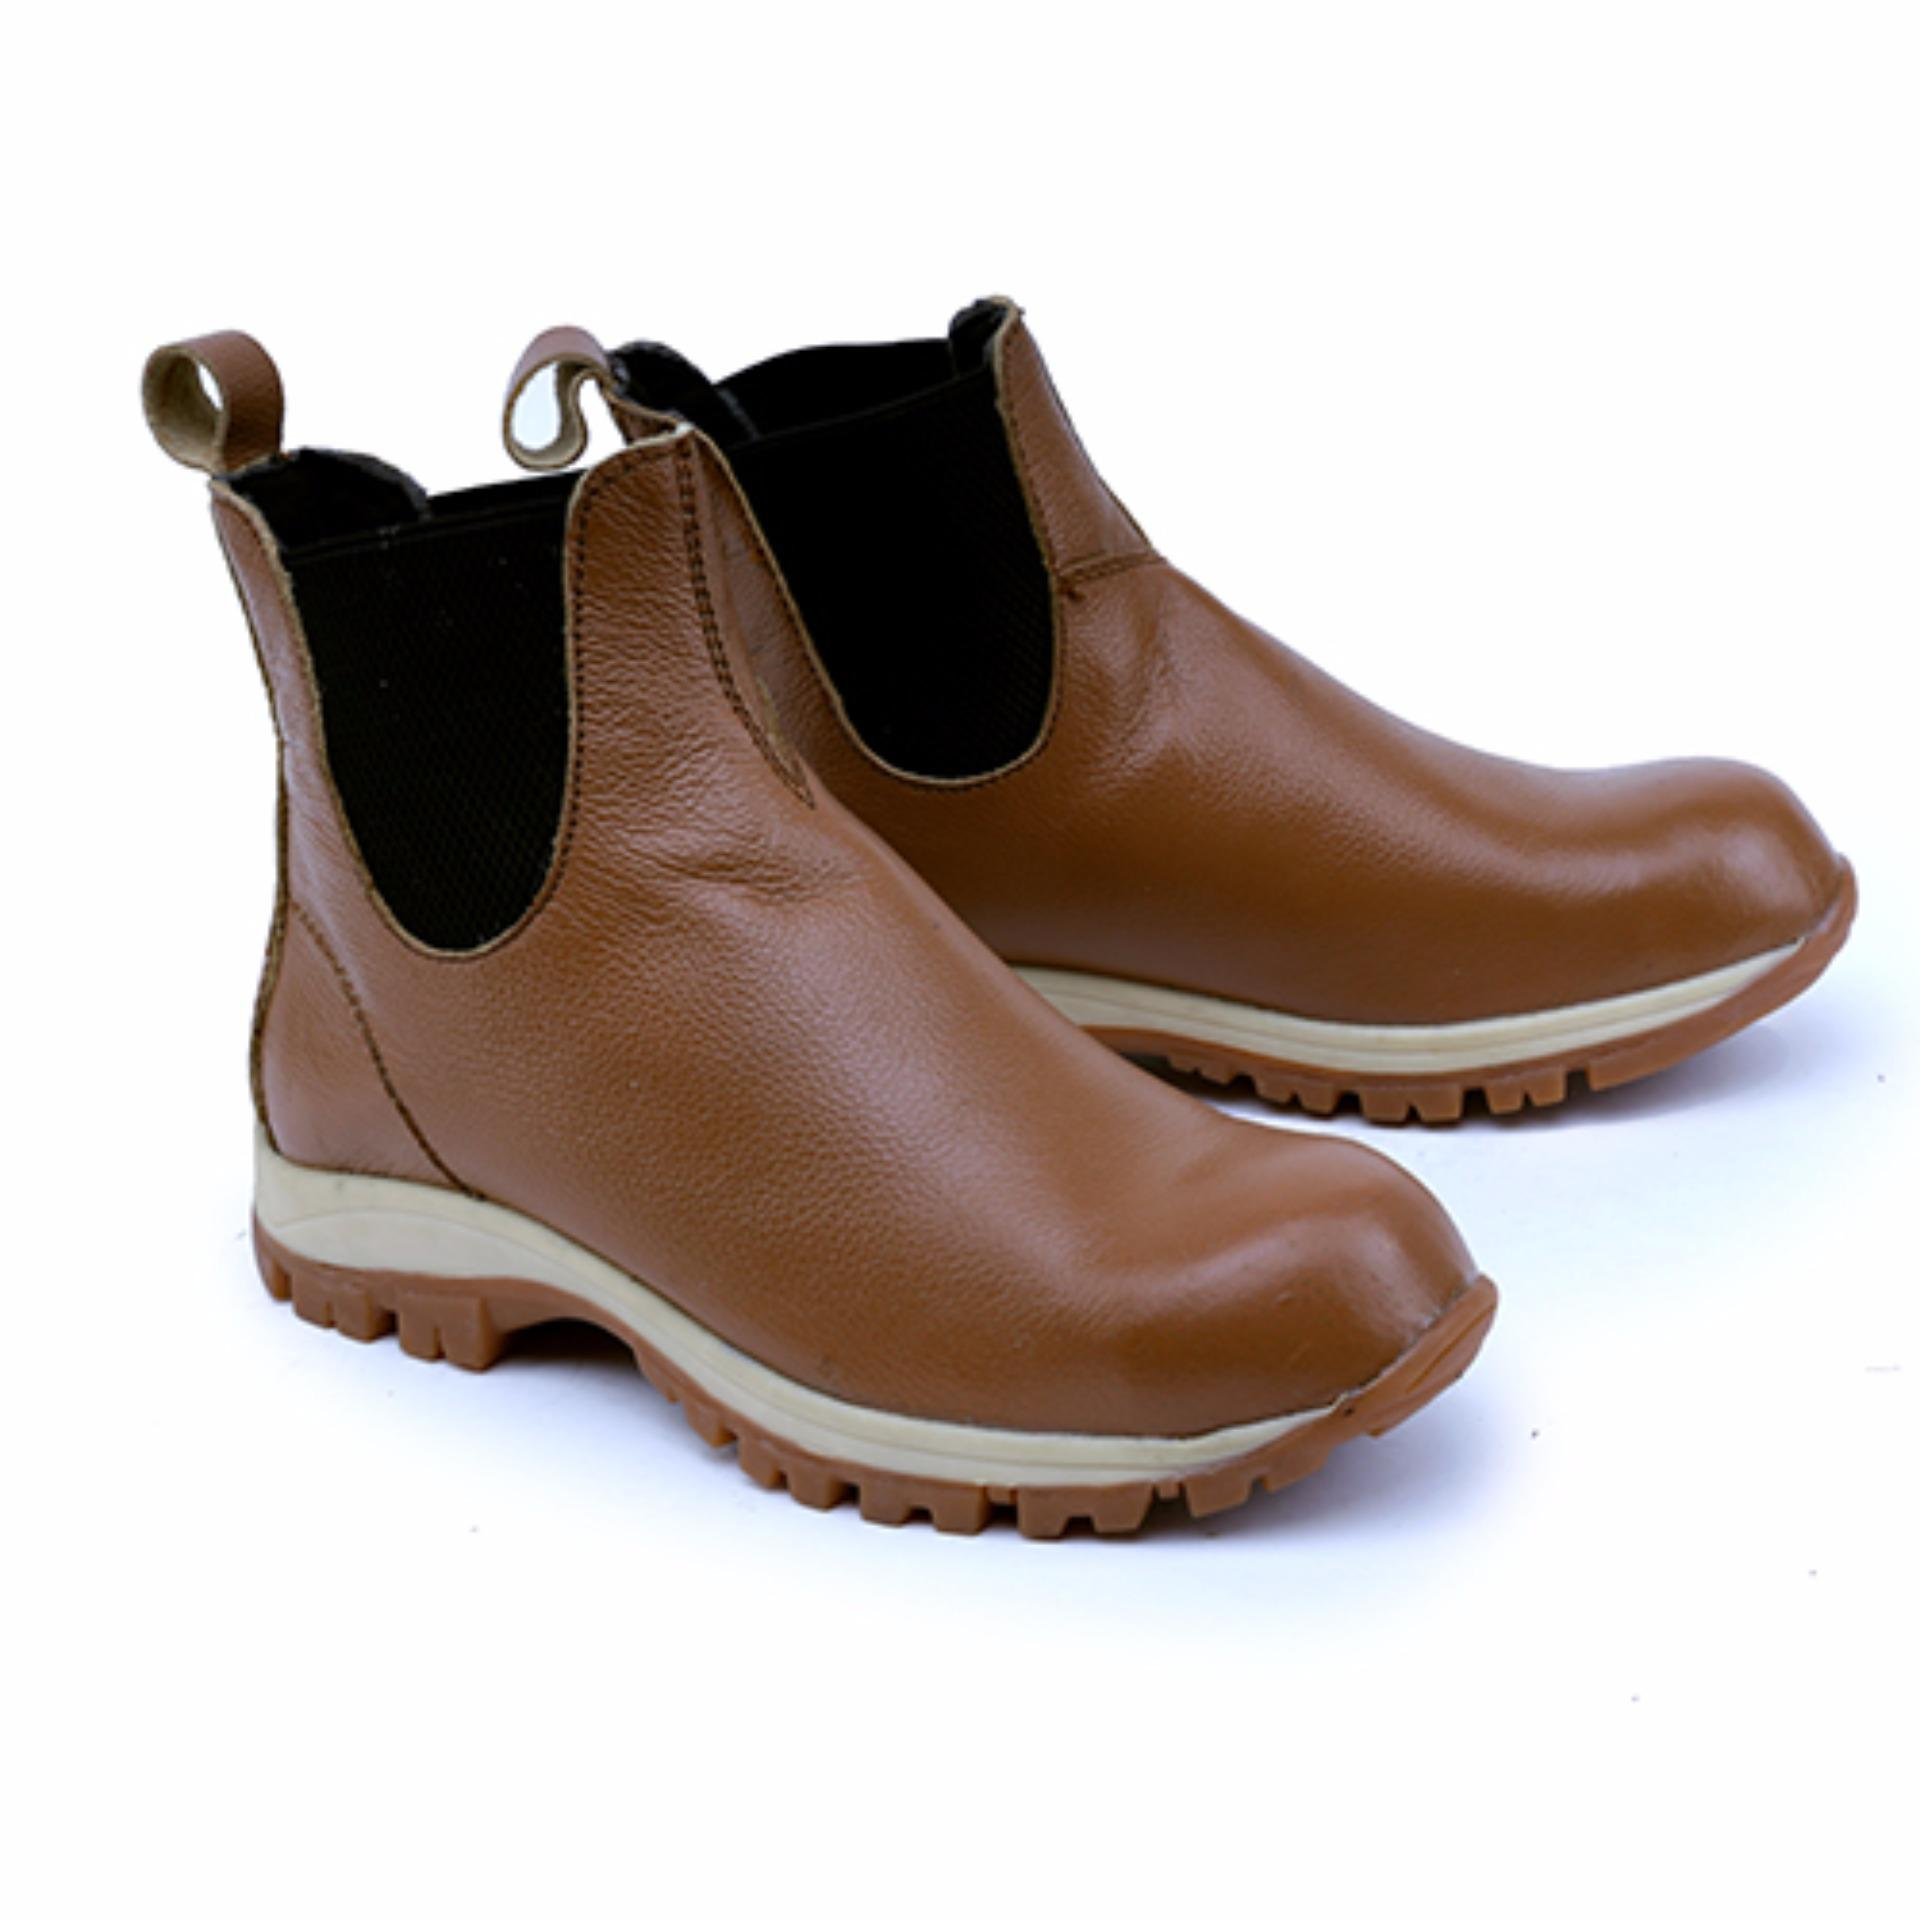 Garsel Sepatu Boots & Safety / Safety Shoes Pria GRN 2501 Bahan Premium Leather